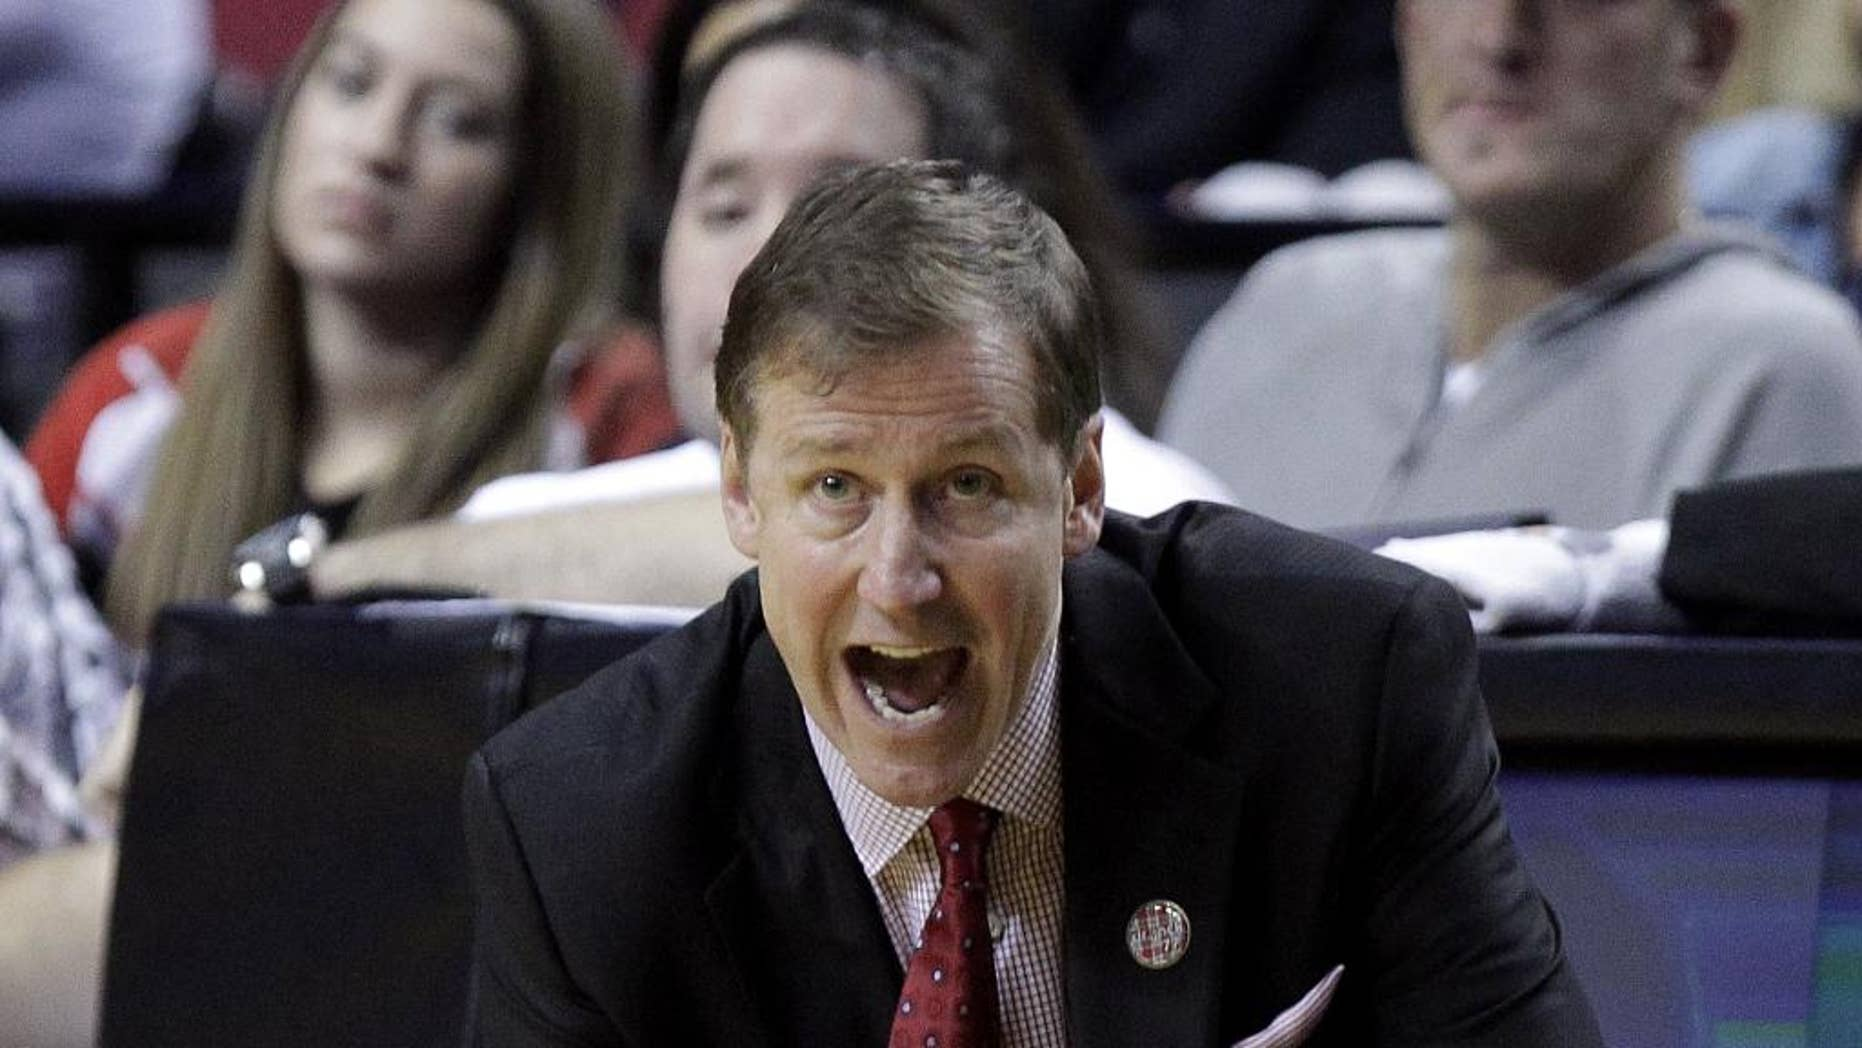 Portland Trail Blazers coach Terry Stotts calls out from the bench area during the second half of an NBA preseason basketball game against Maccabi Haifa in Portland, Ore., Friday, Oct. 17, 2014. The entire Portland roster of 17 players scored as the Blazers won 121-74. (AP Photo/Don Ryan)